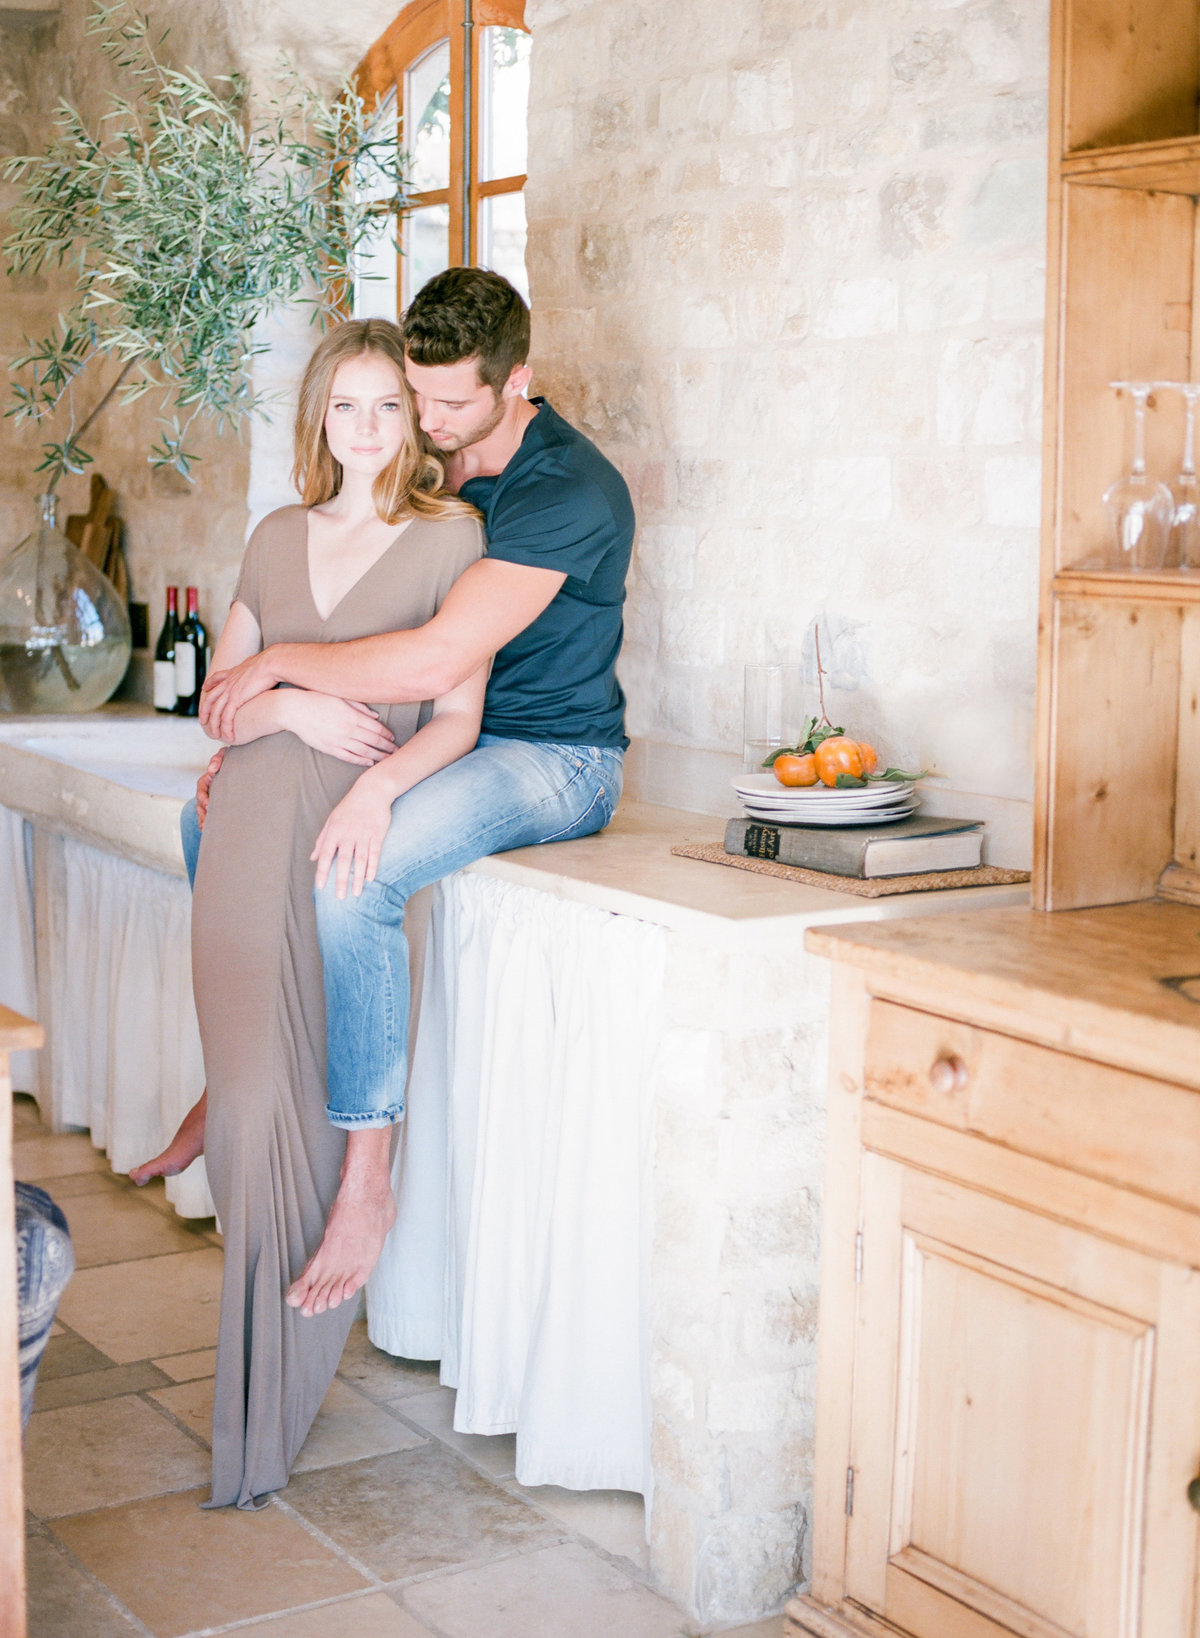 Romantic Kitchen Engagement Photos California